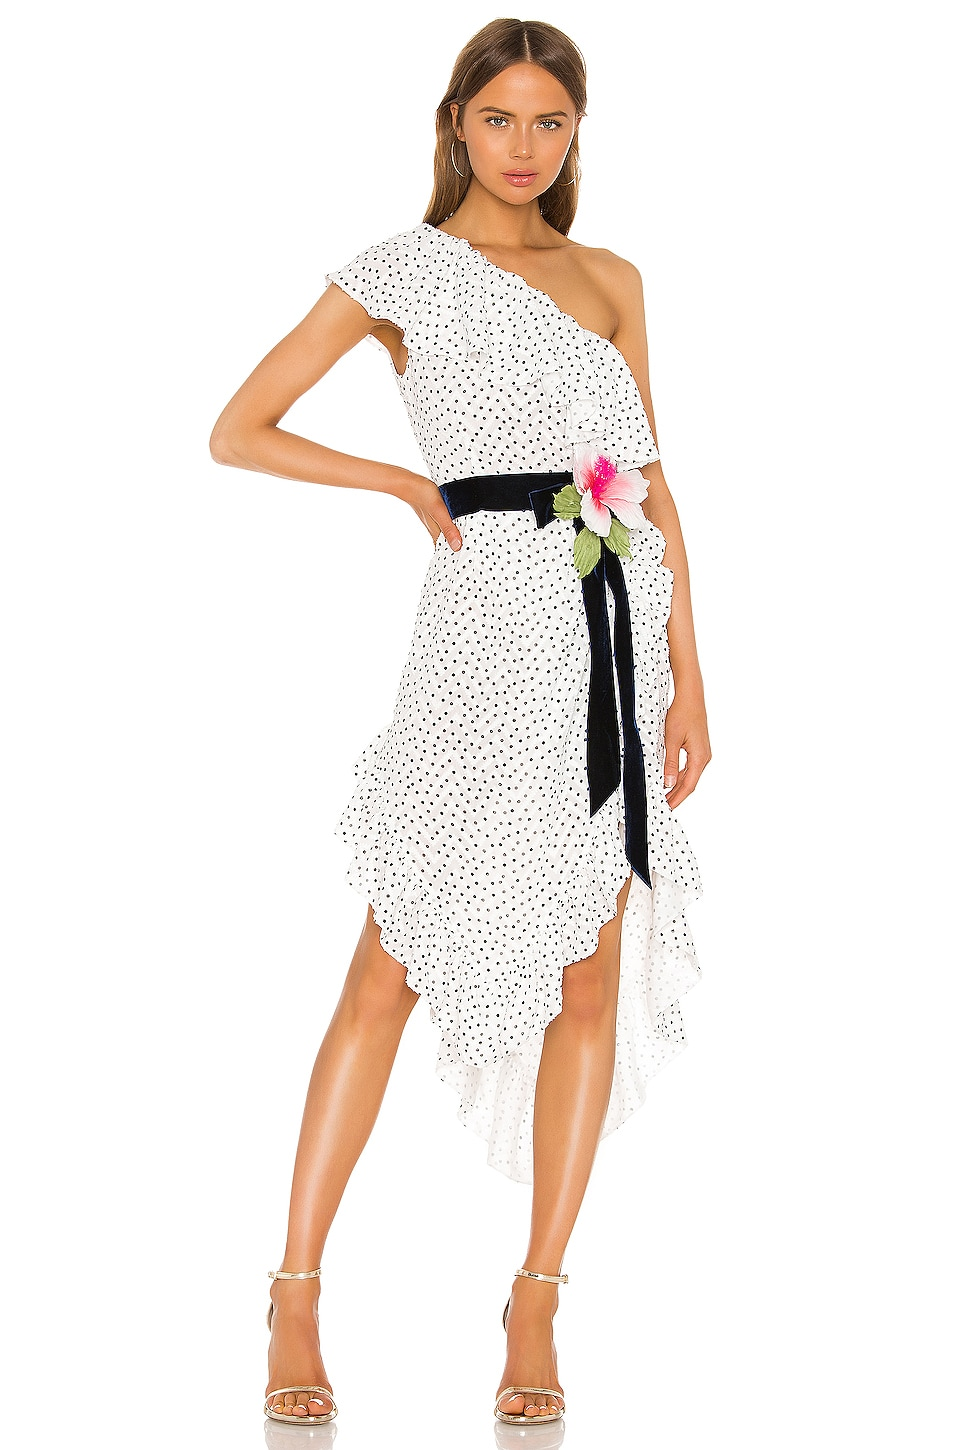 MARIANNA SENCHINA One Shoulder Dress in White With Black Polka Dot